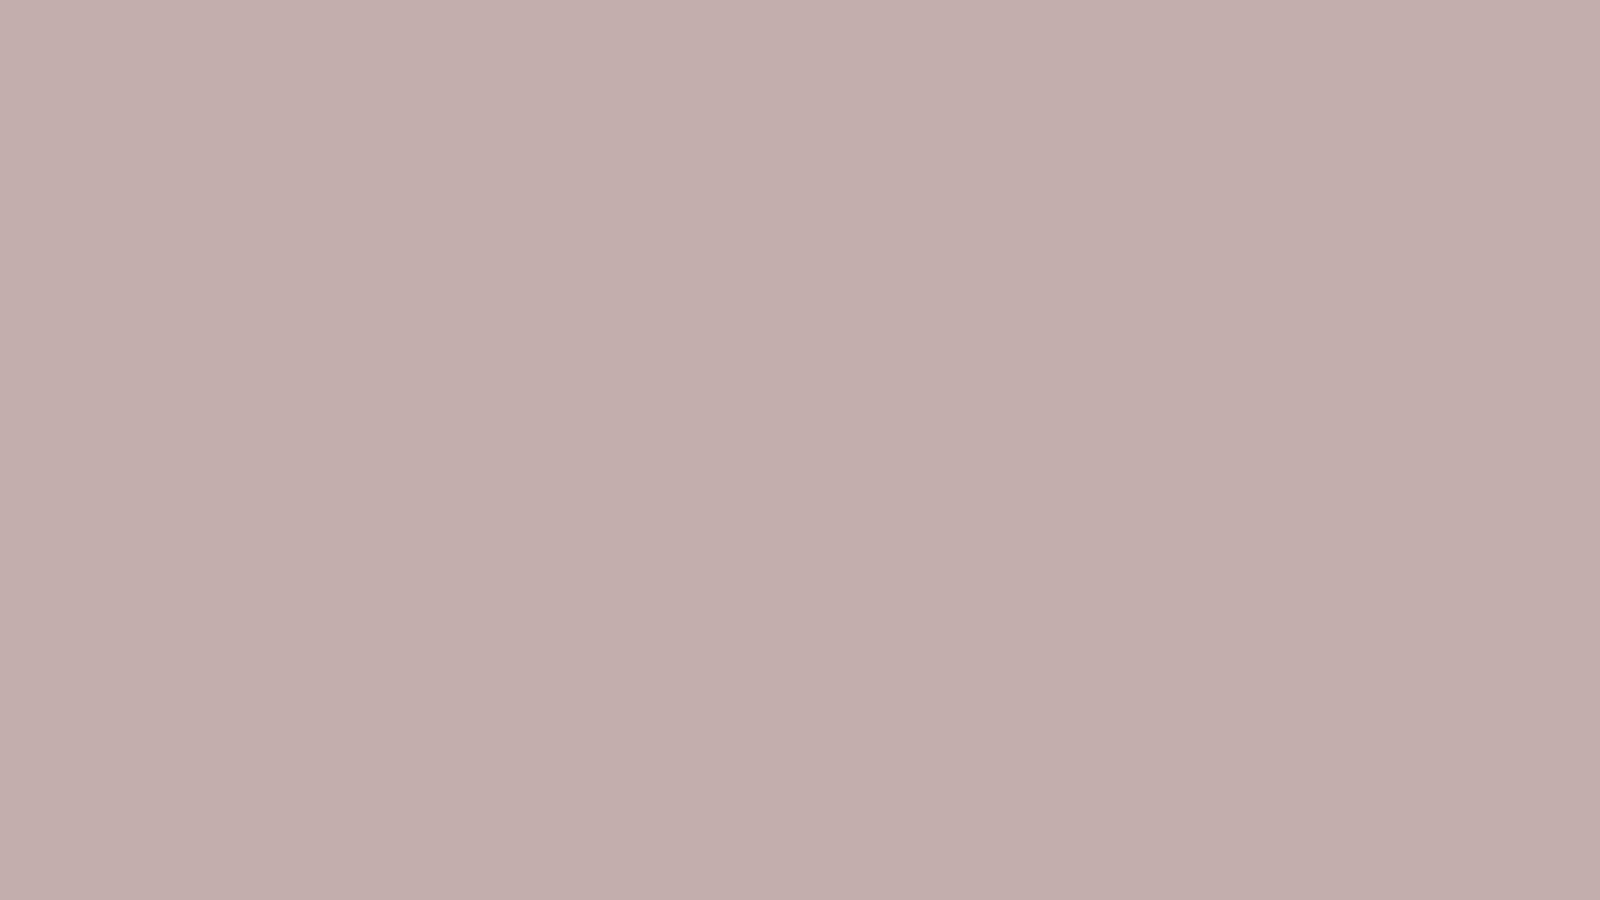 1600x900 Silver Pink Solid Color Background